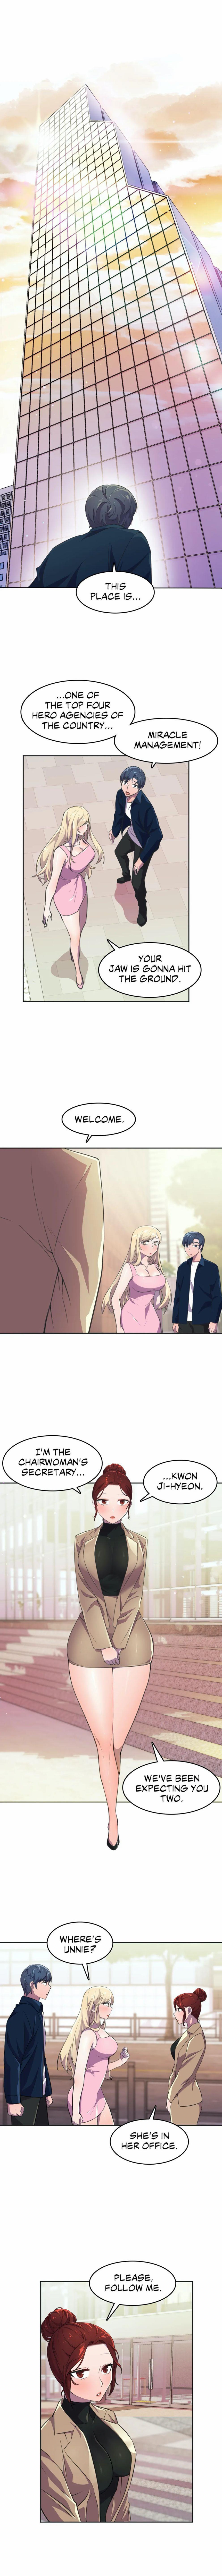 HERO MANAGER Ch. 1-16 82